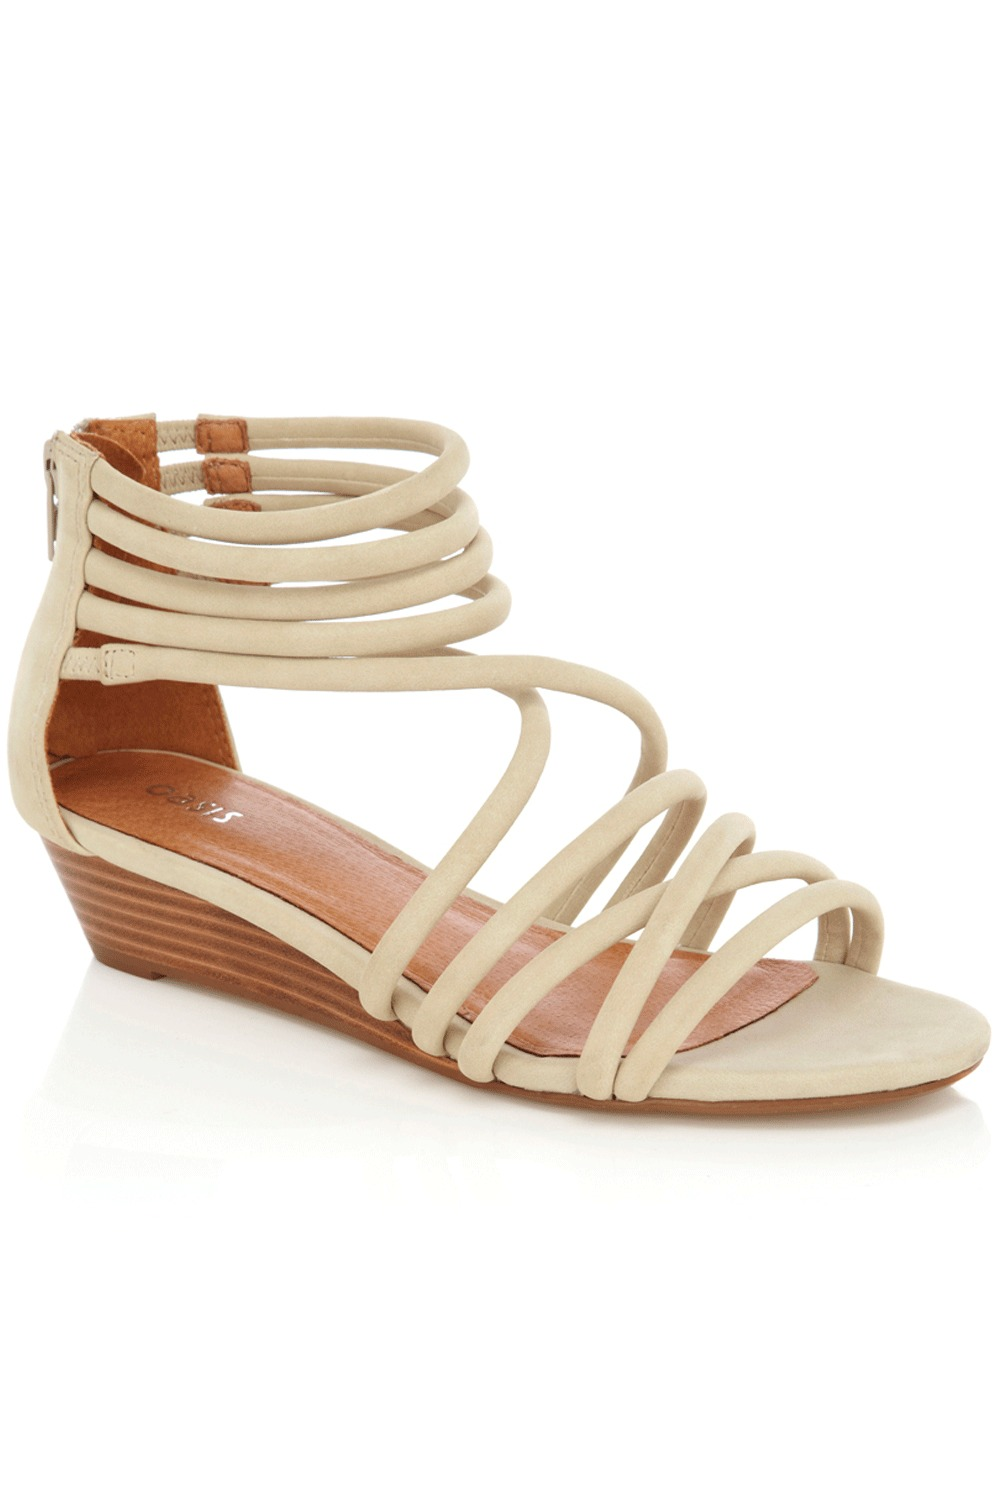 Tube Wedge Sandals - predominant colour: ivory; material: faux leather; heel height: mid; embellishment: zips; ankle detail: ankle strap; heel: wedge; toe: open toe/peeptoe; style: strappy